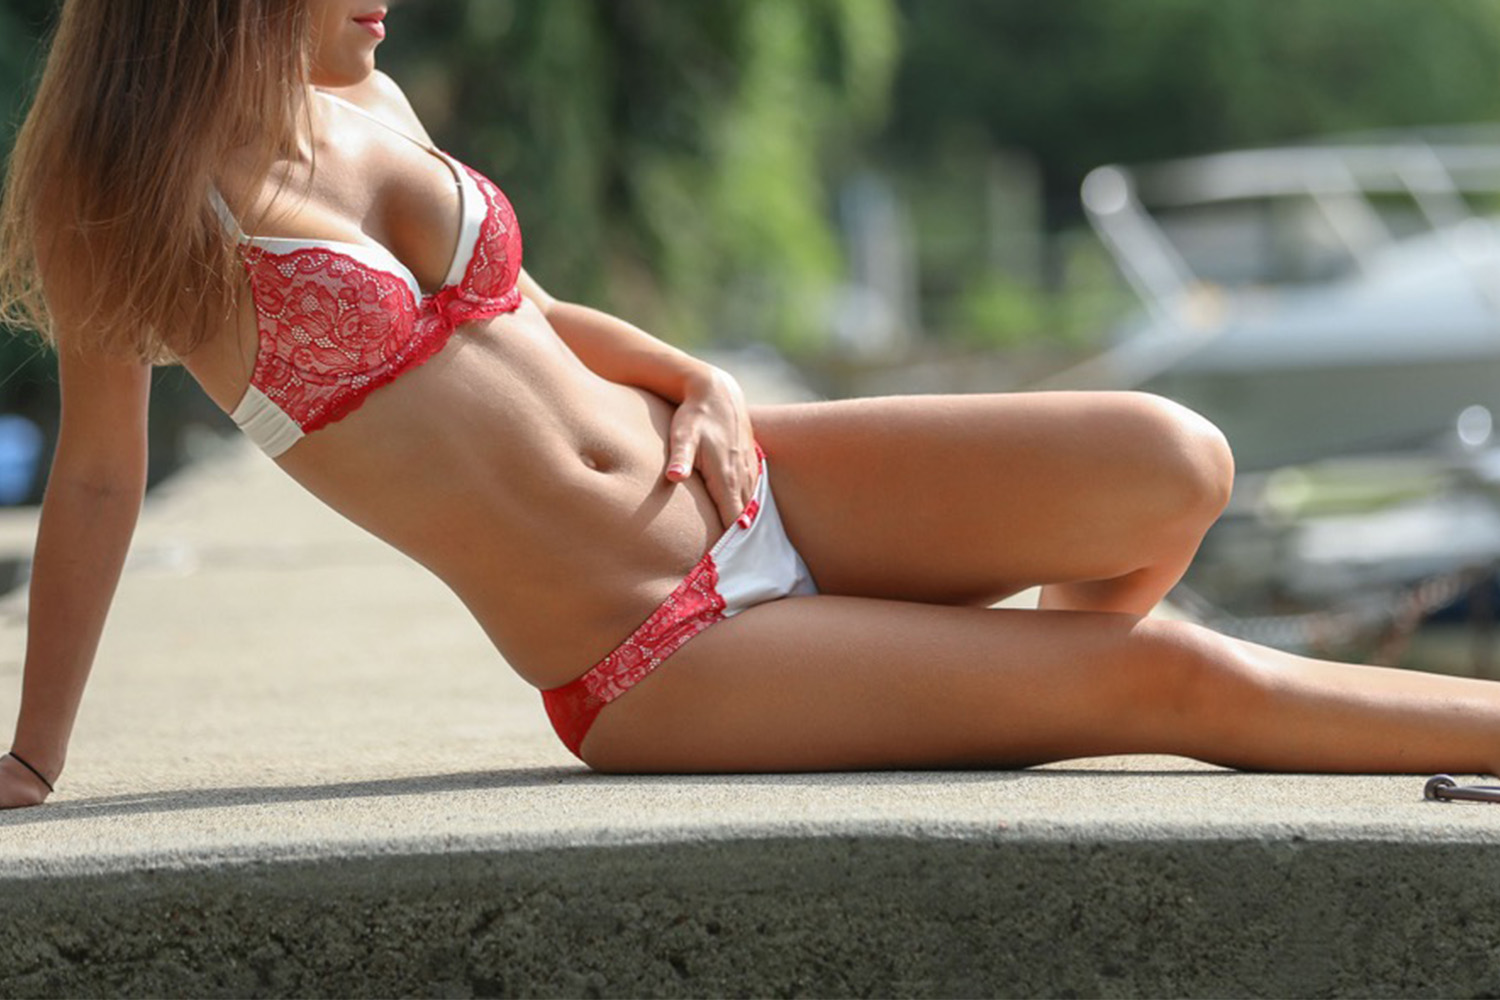 victoria-geneva-dreams-paris-monaco-escort-girl.jpg